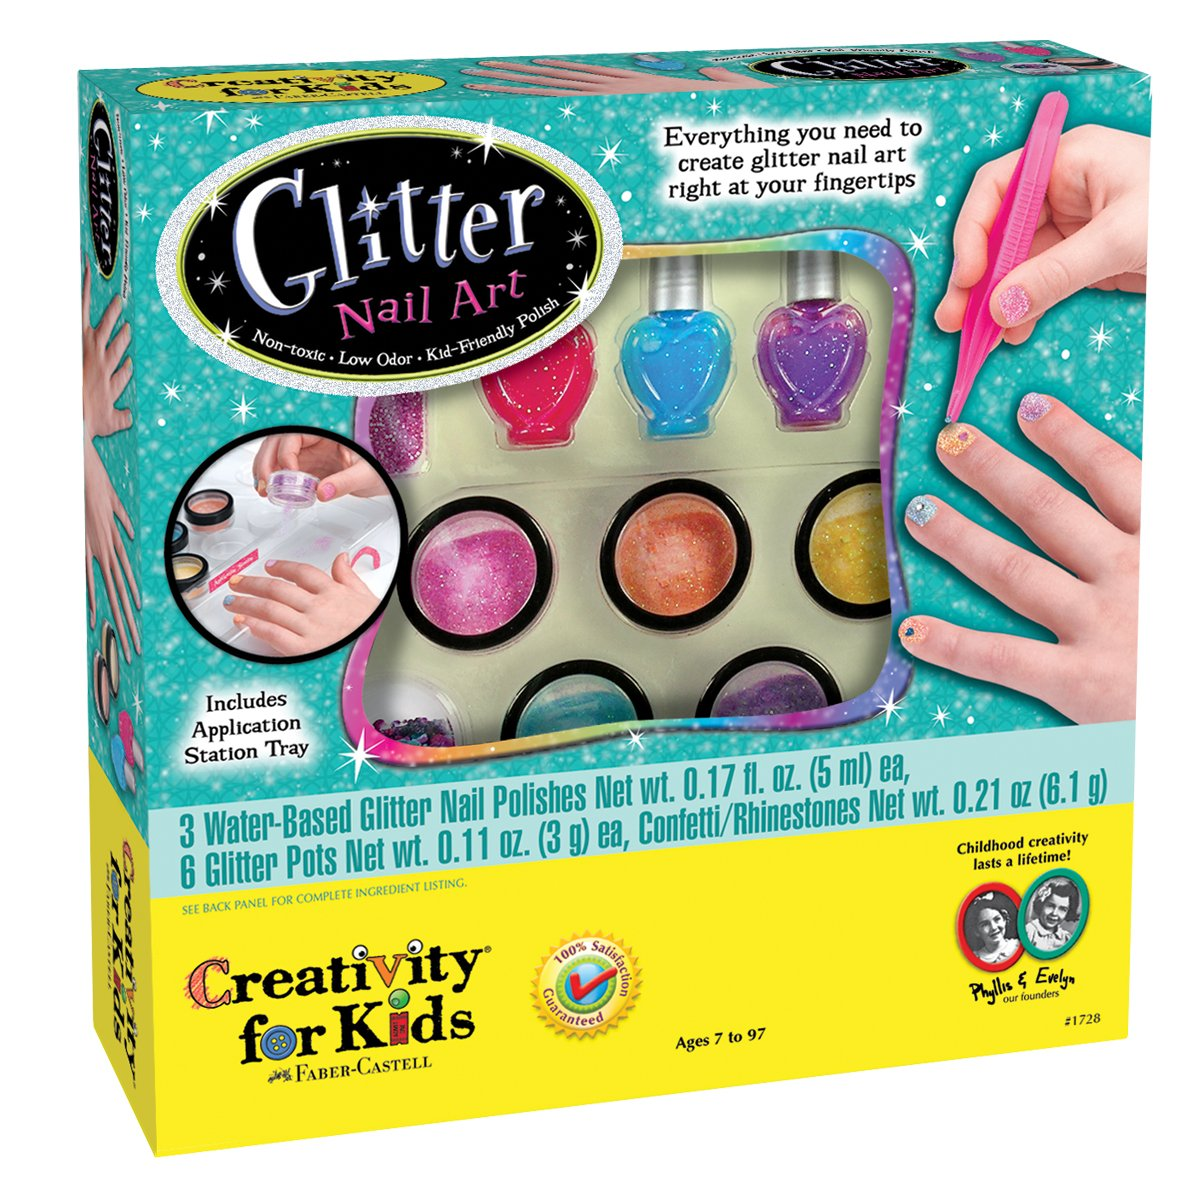 Amazon.com: Creativity for Kids Glitter Nail Art - Glitter Manicure ...